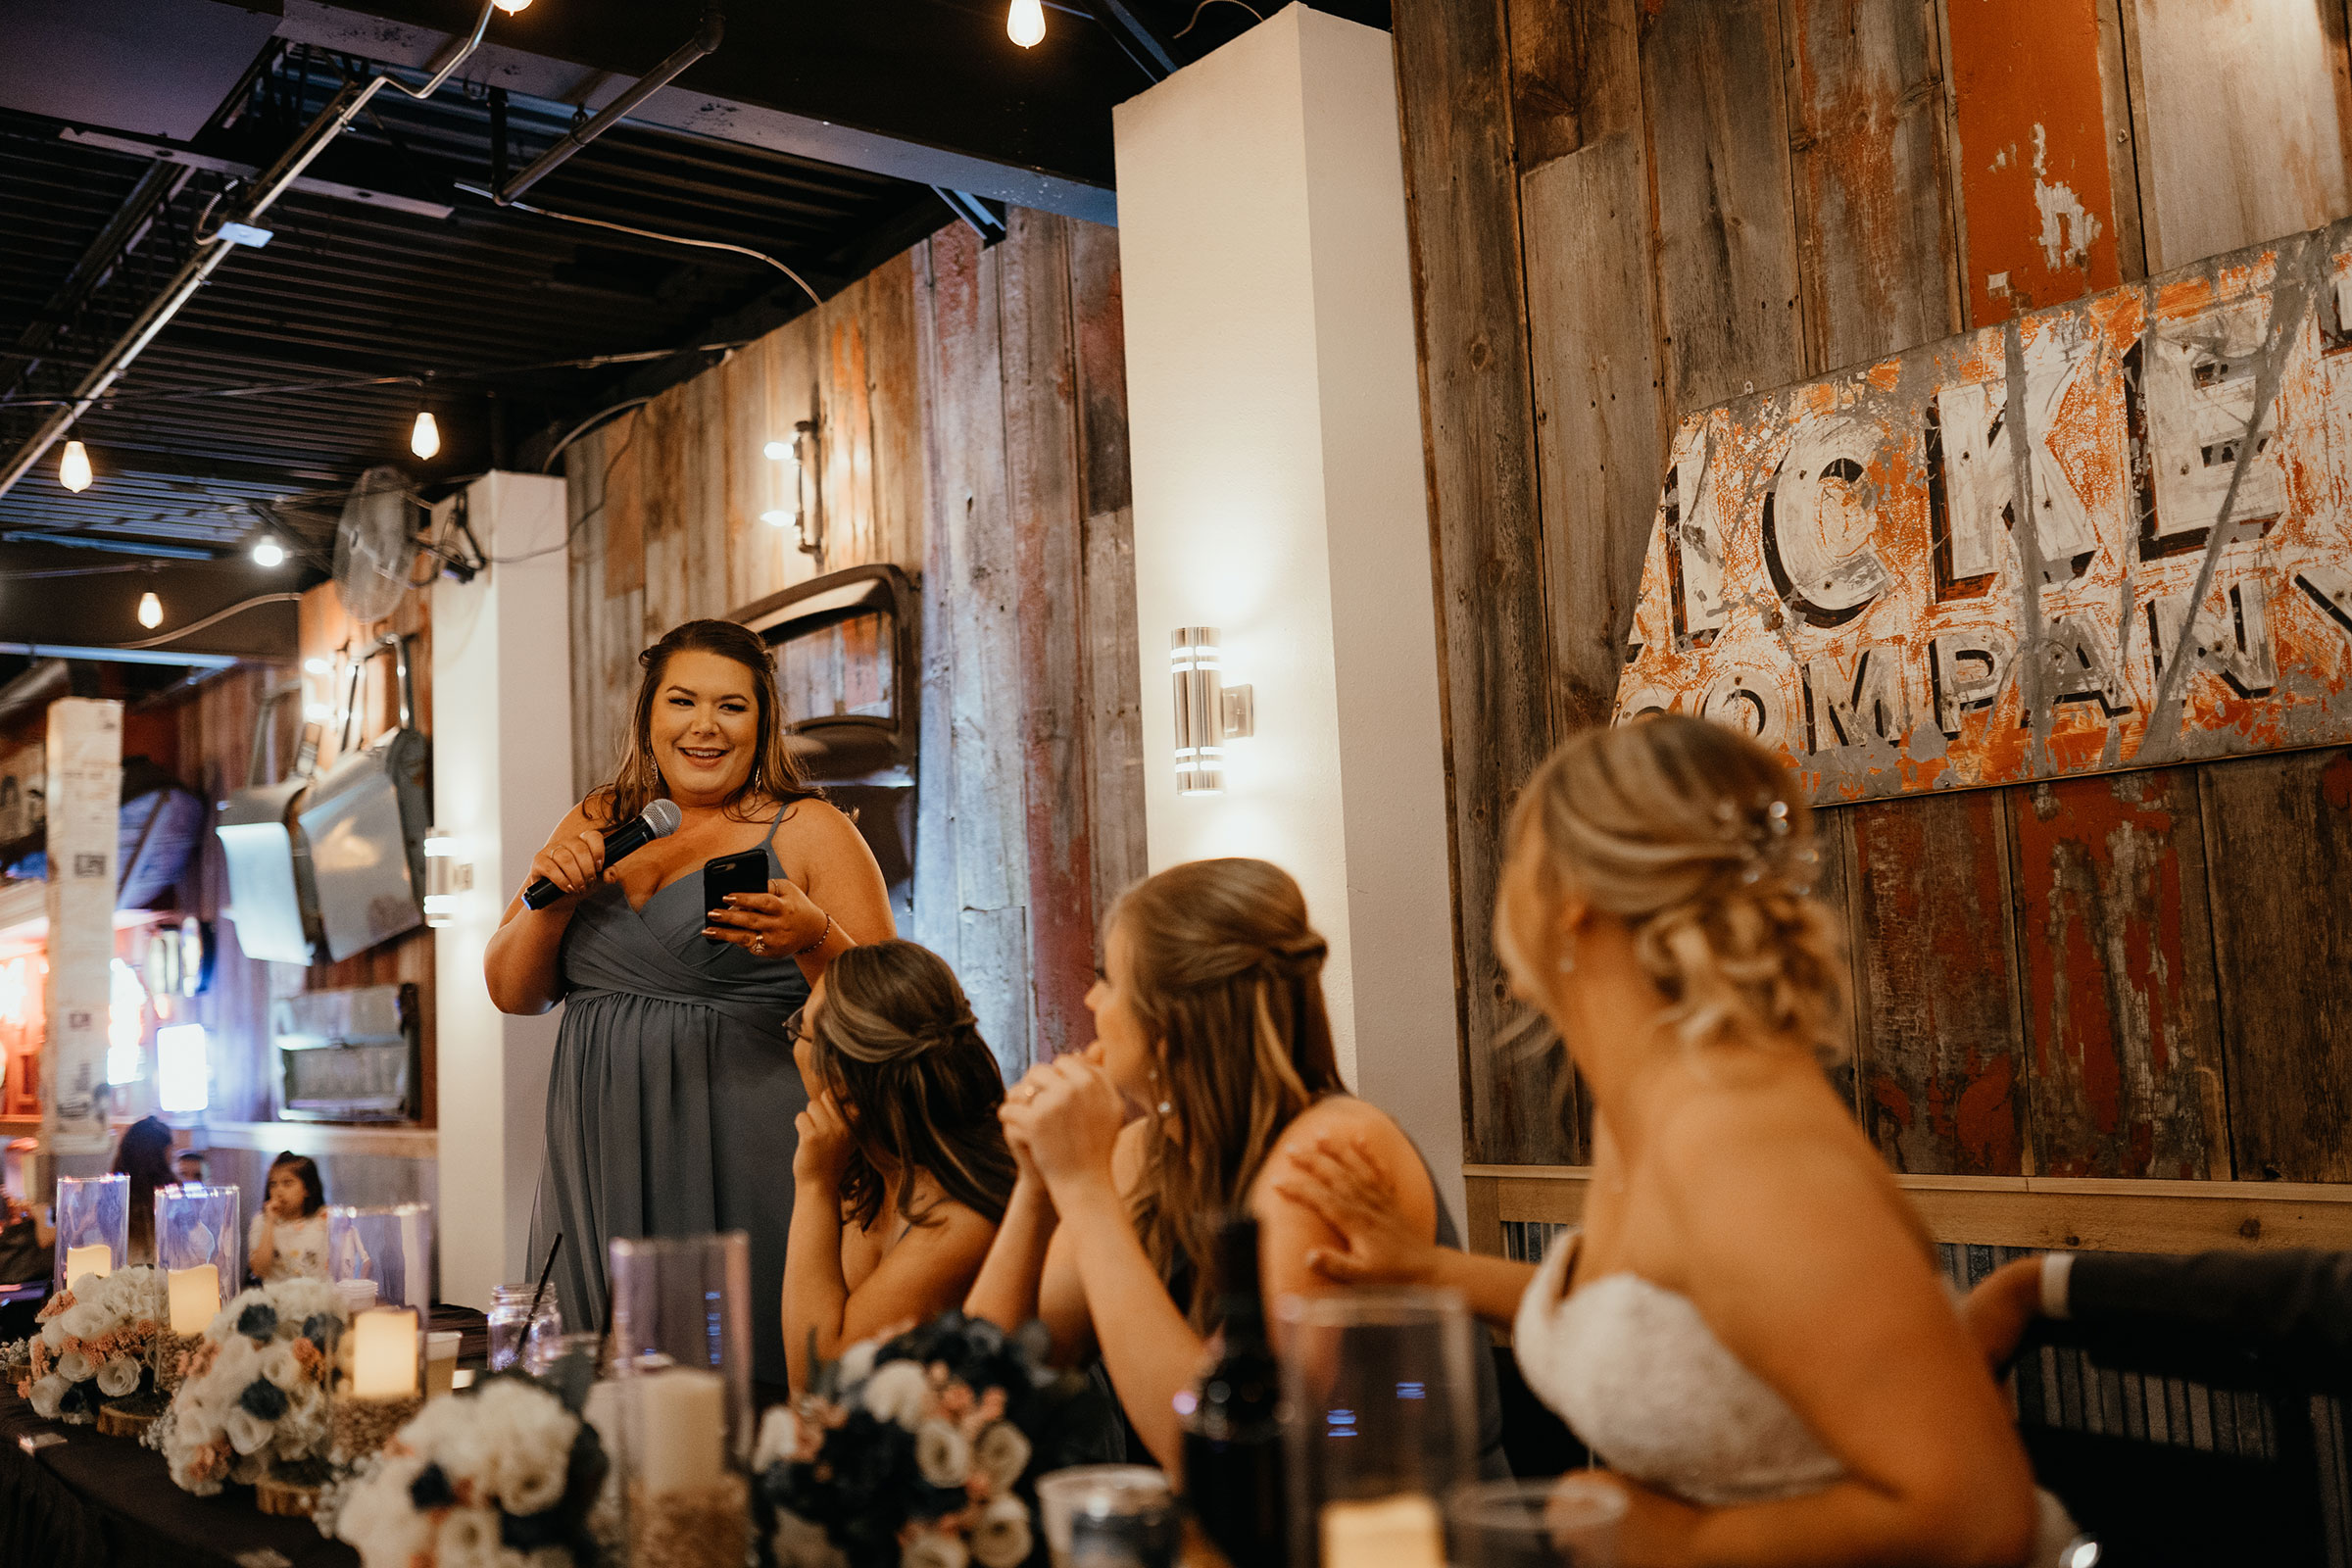 bridesmaid-giving-speech-decades-event-center-building-desmoines-iowa-raelyn-ramey-photography..jpg